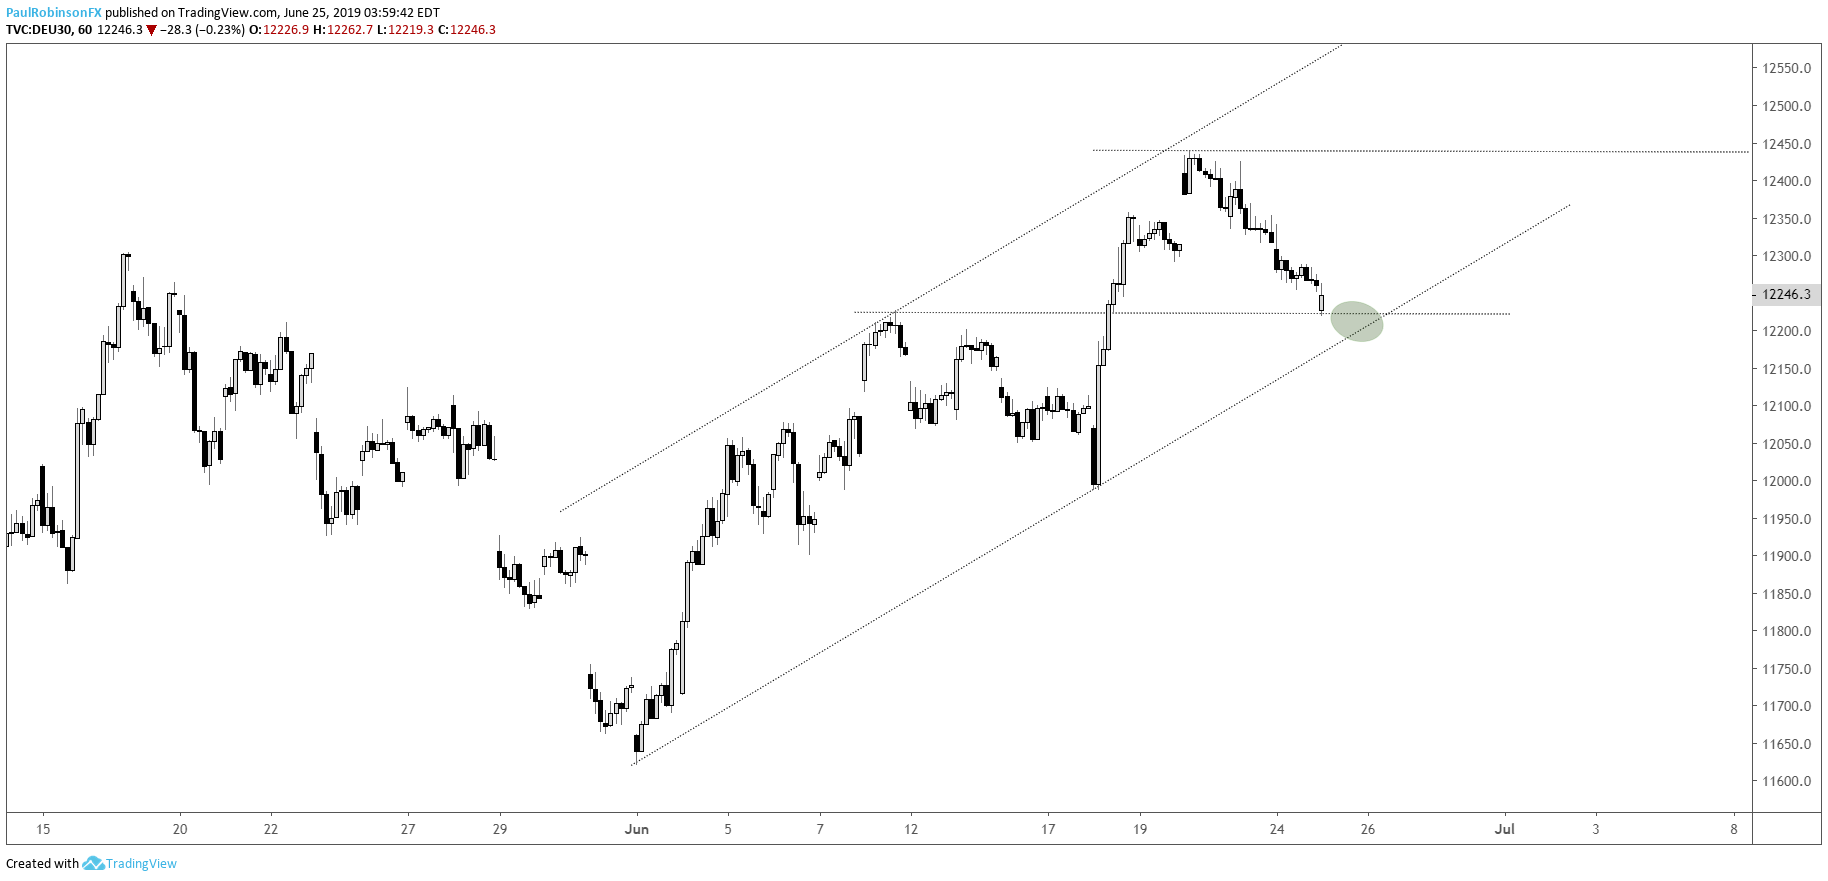 Dax 30 Amp Cac 40 Technical Outlook Pullback Constructive